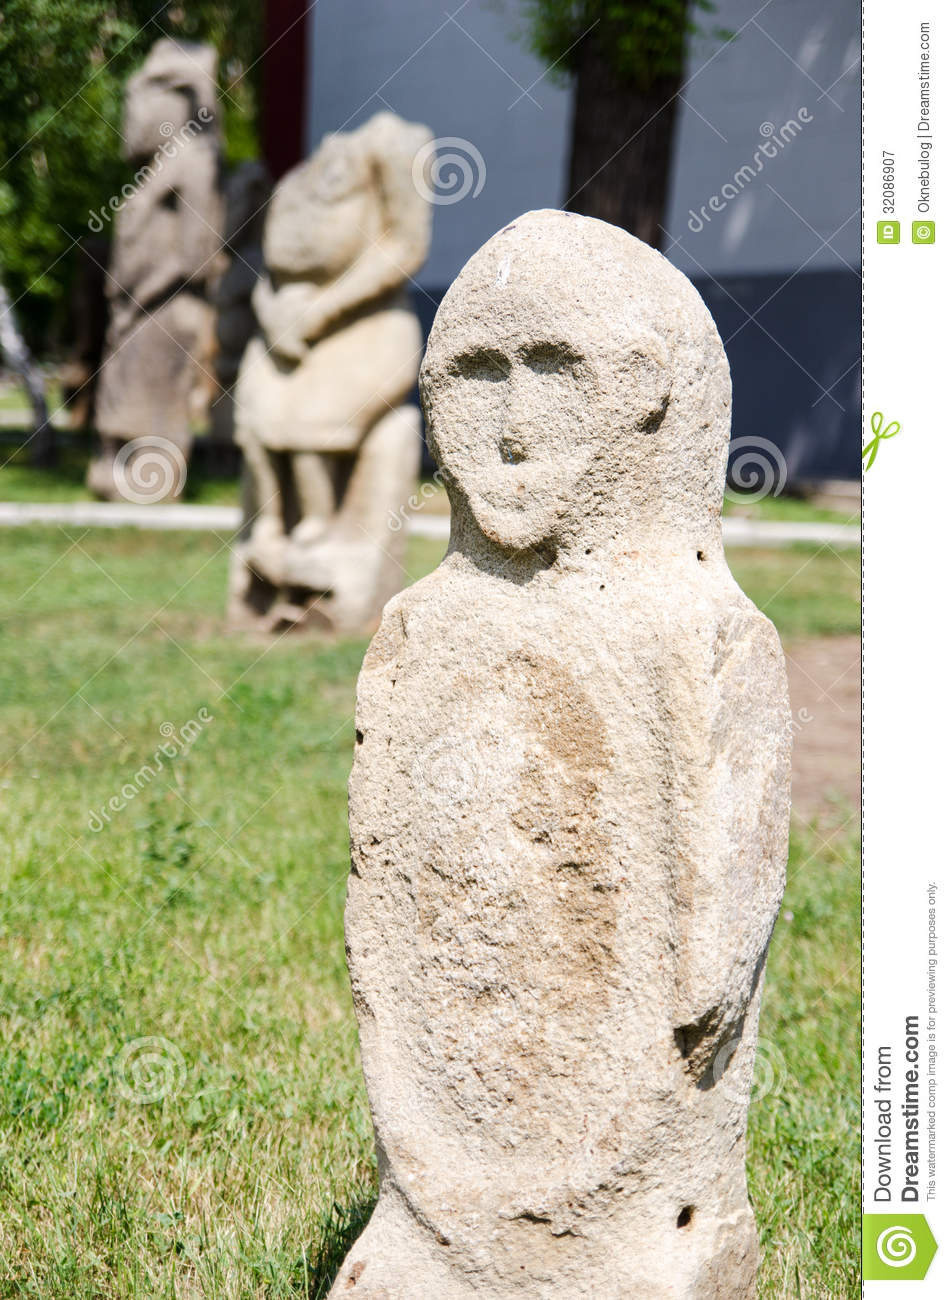 Stone polovtsian sculpture in park-museum of Lugansk, Ukraine